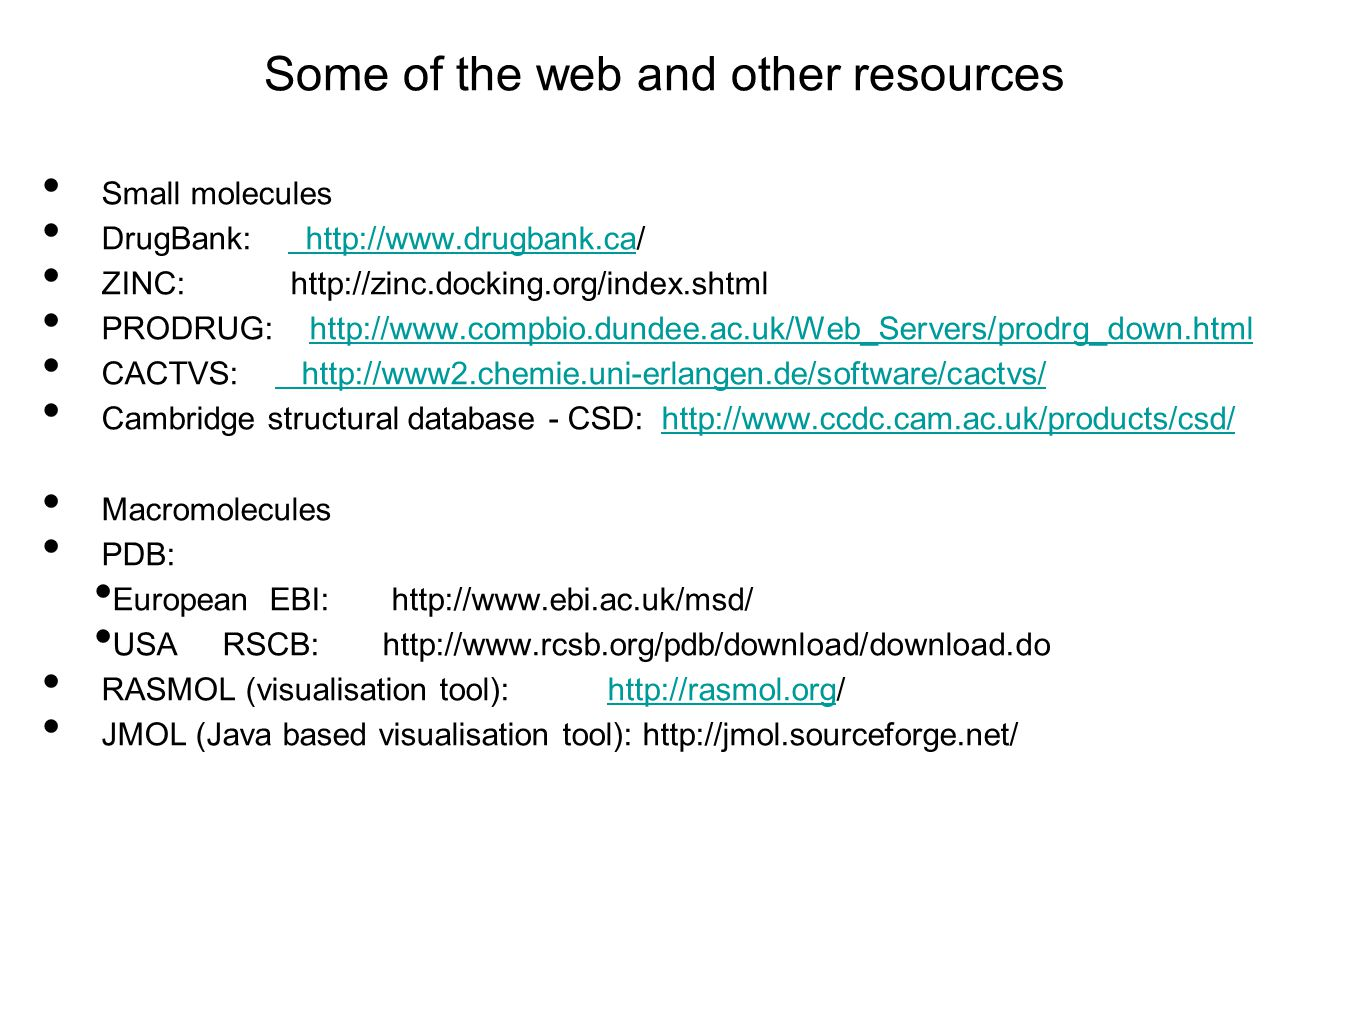 Some of the web and other resources Small molecules DrugBank: http://www.drugbank.ca/ http://www.drugbank.ca ZINC: http://zinc.docking.org/index.shtml